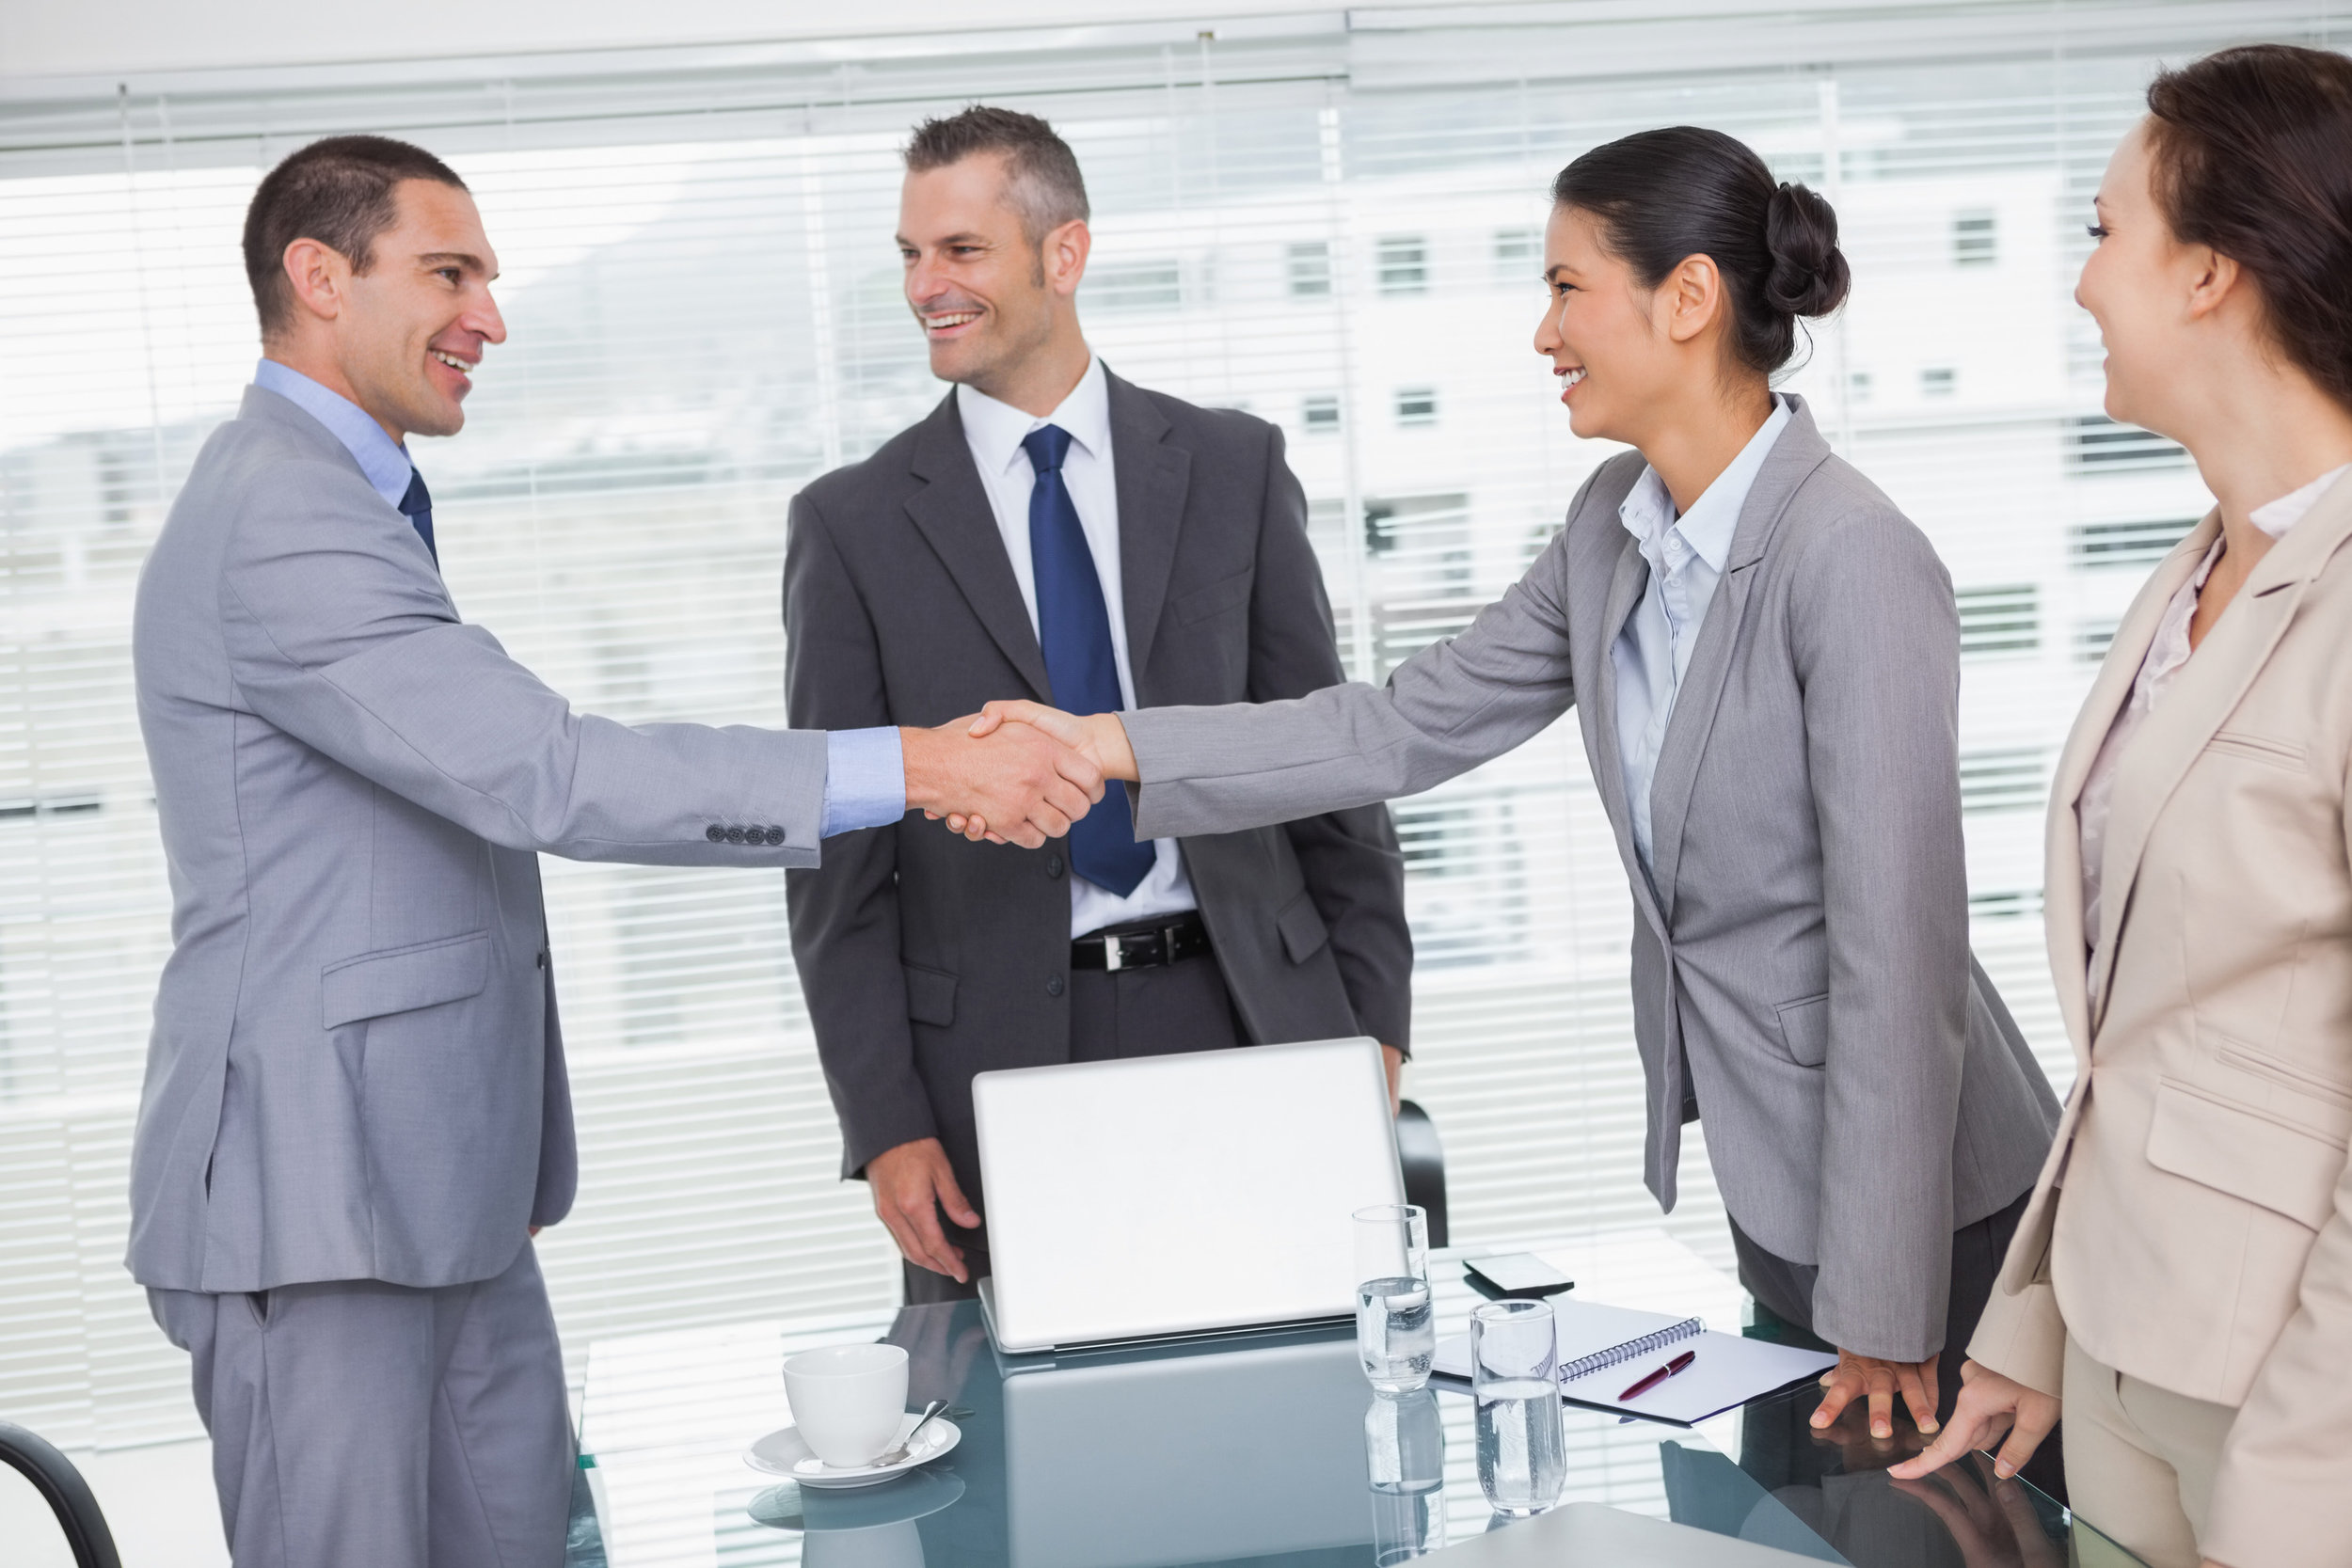 photodune-8459493-cheerful-business-people-meeting-and-shaking-hands-in-bright-office-l.jpg